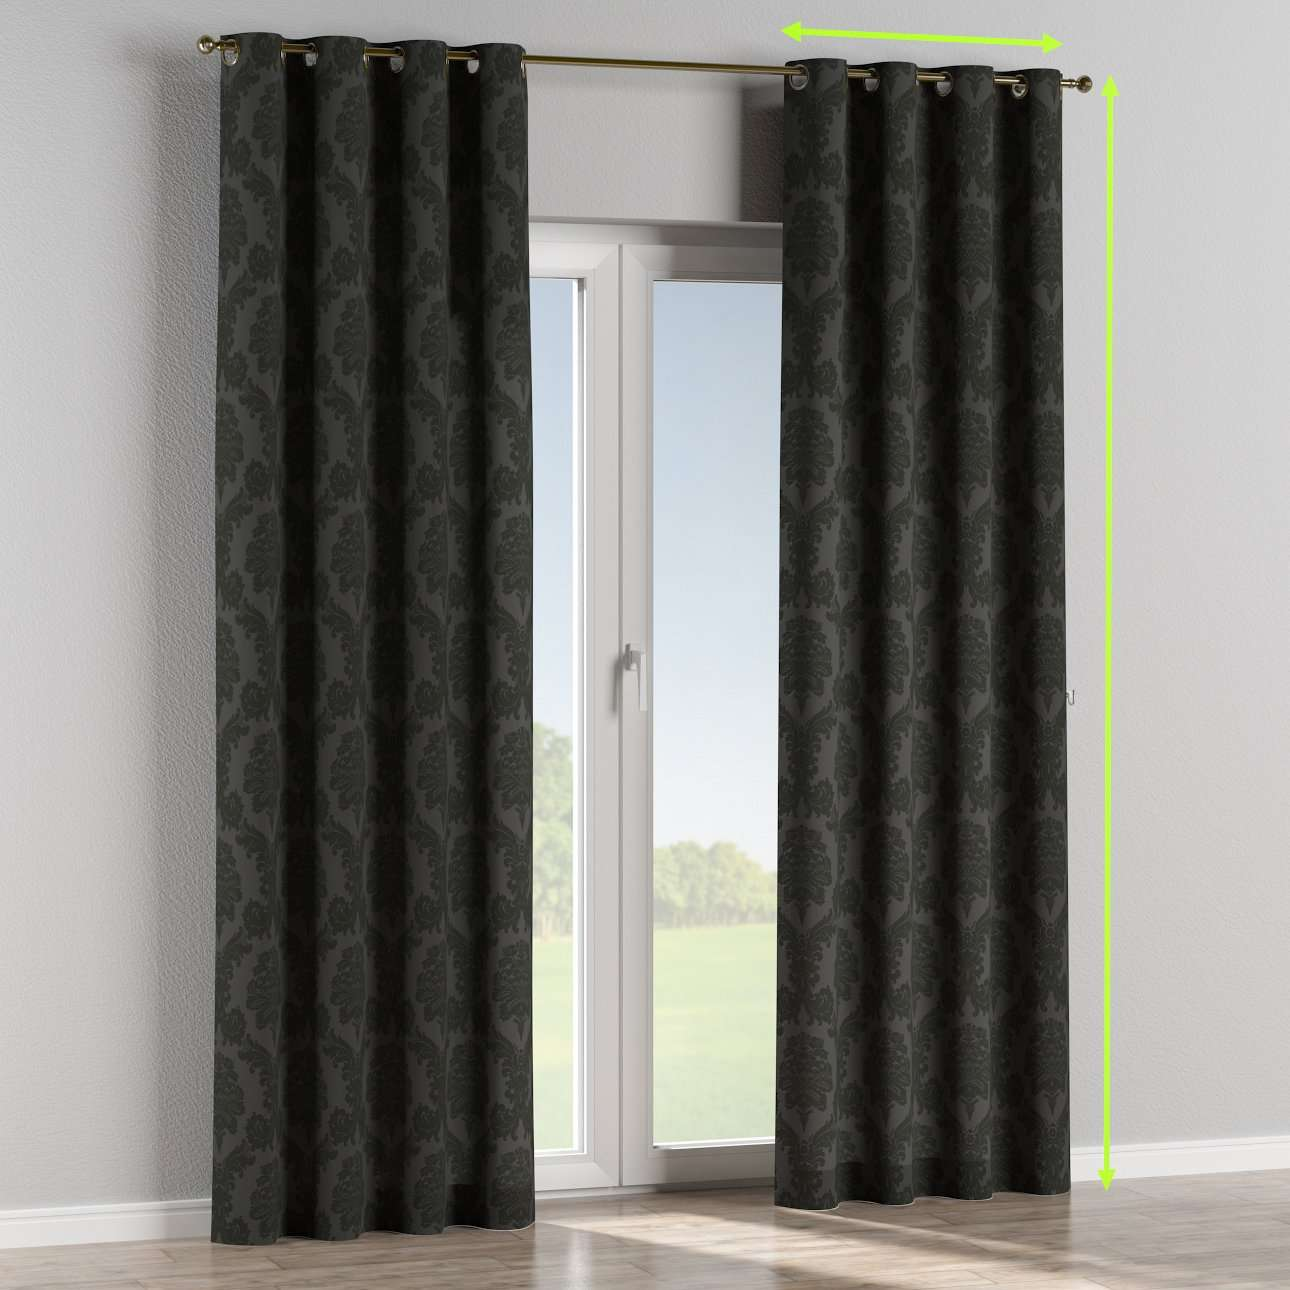 Eyelet curtains in collection Damasco, fabric: 613-32